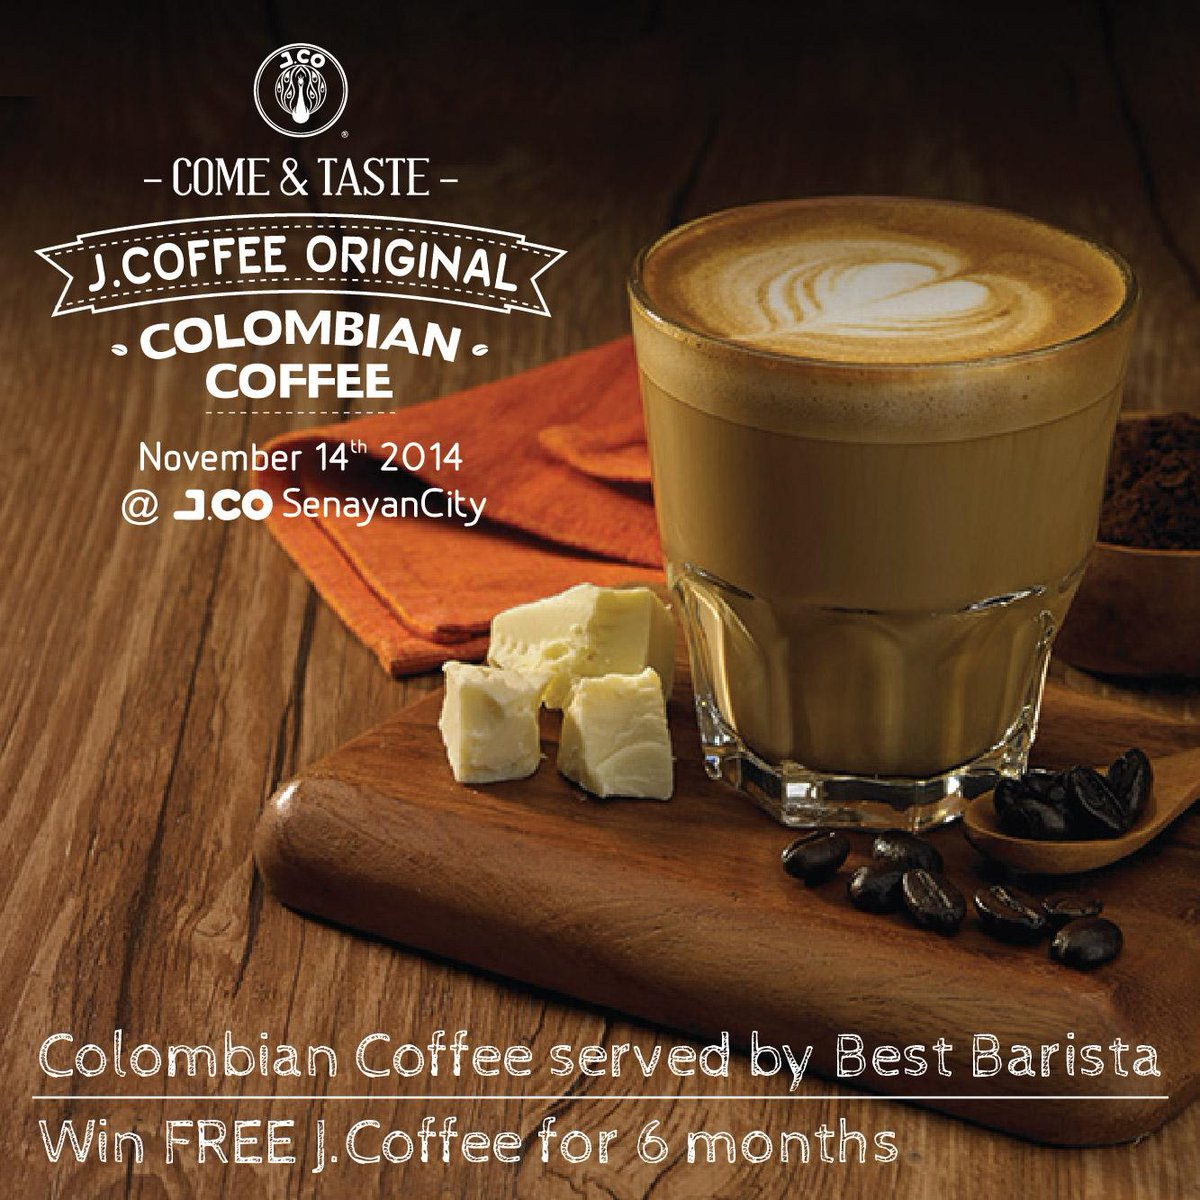 RETWEET this post and have a chance to win FREE http://t.co/44hBNcXTsM for 6 months! #JCoffee http://t.co/CjuYFjEiv9